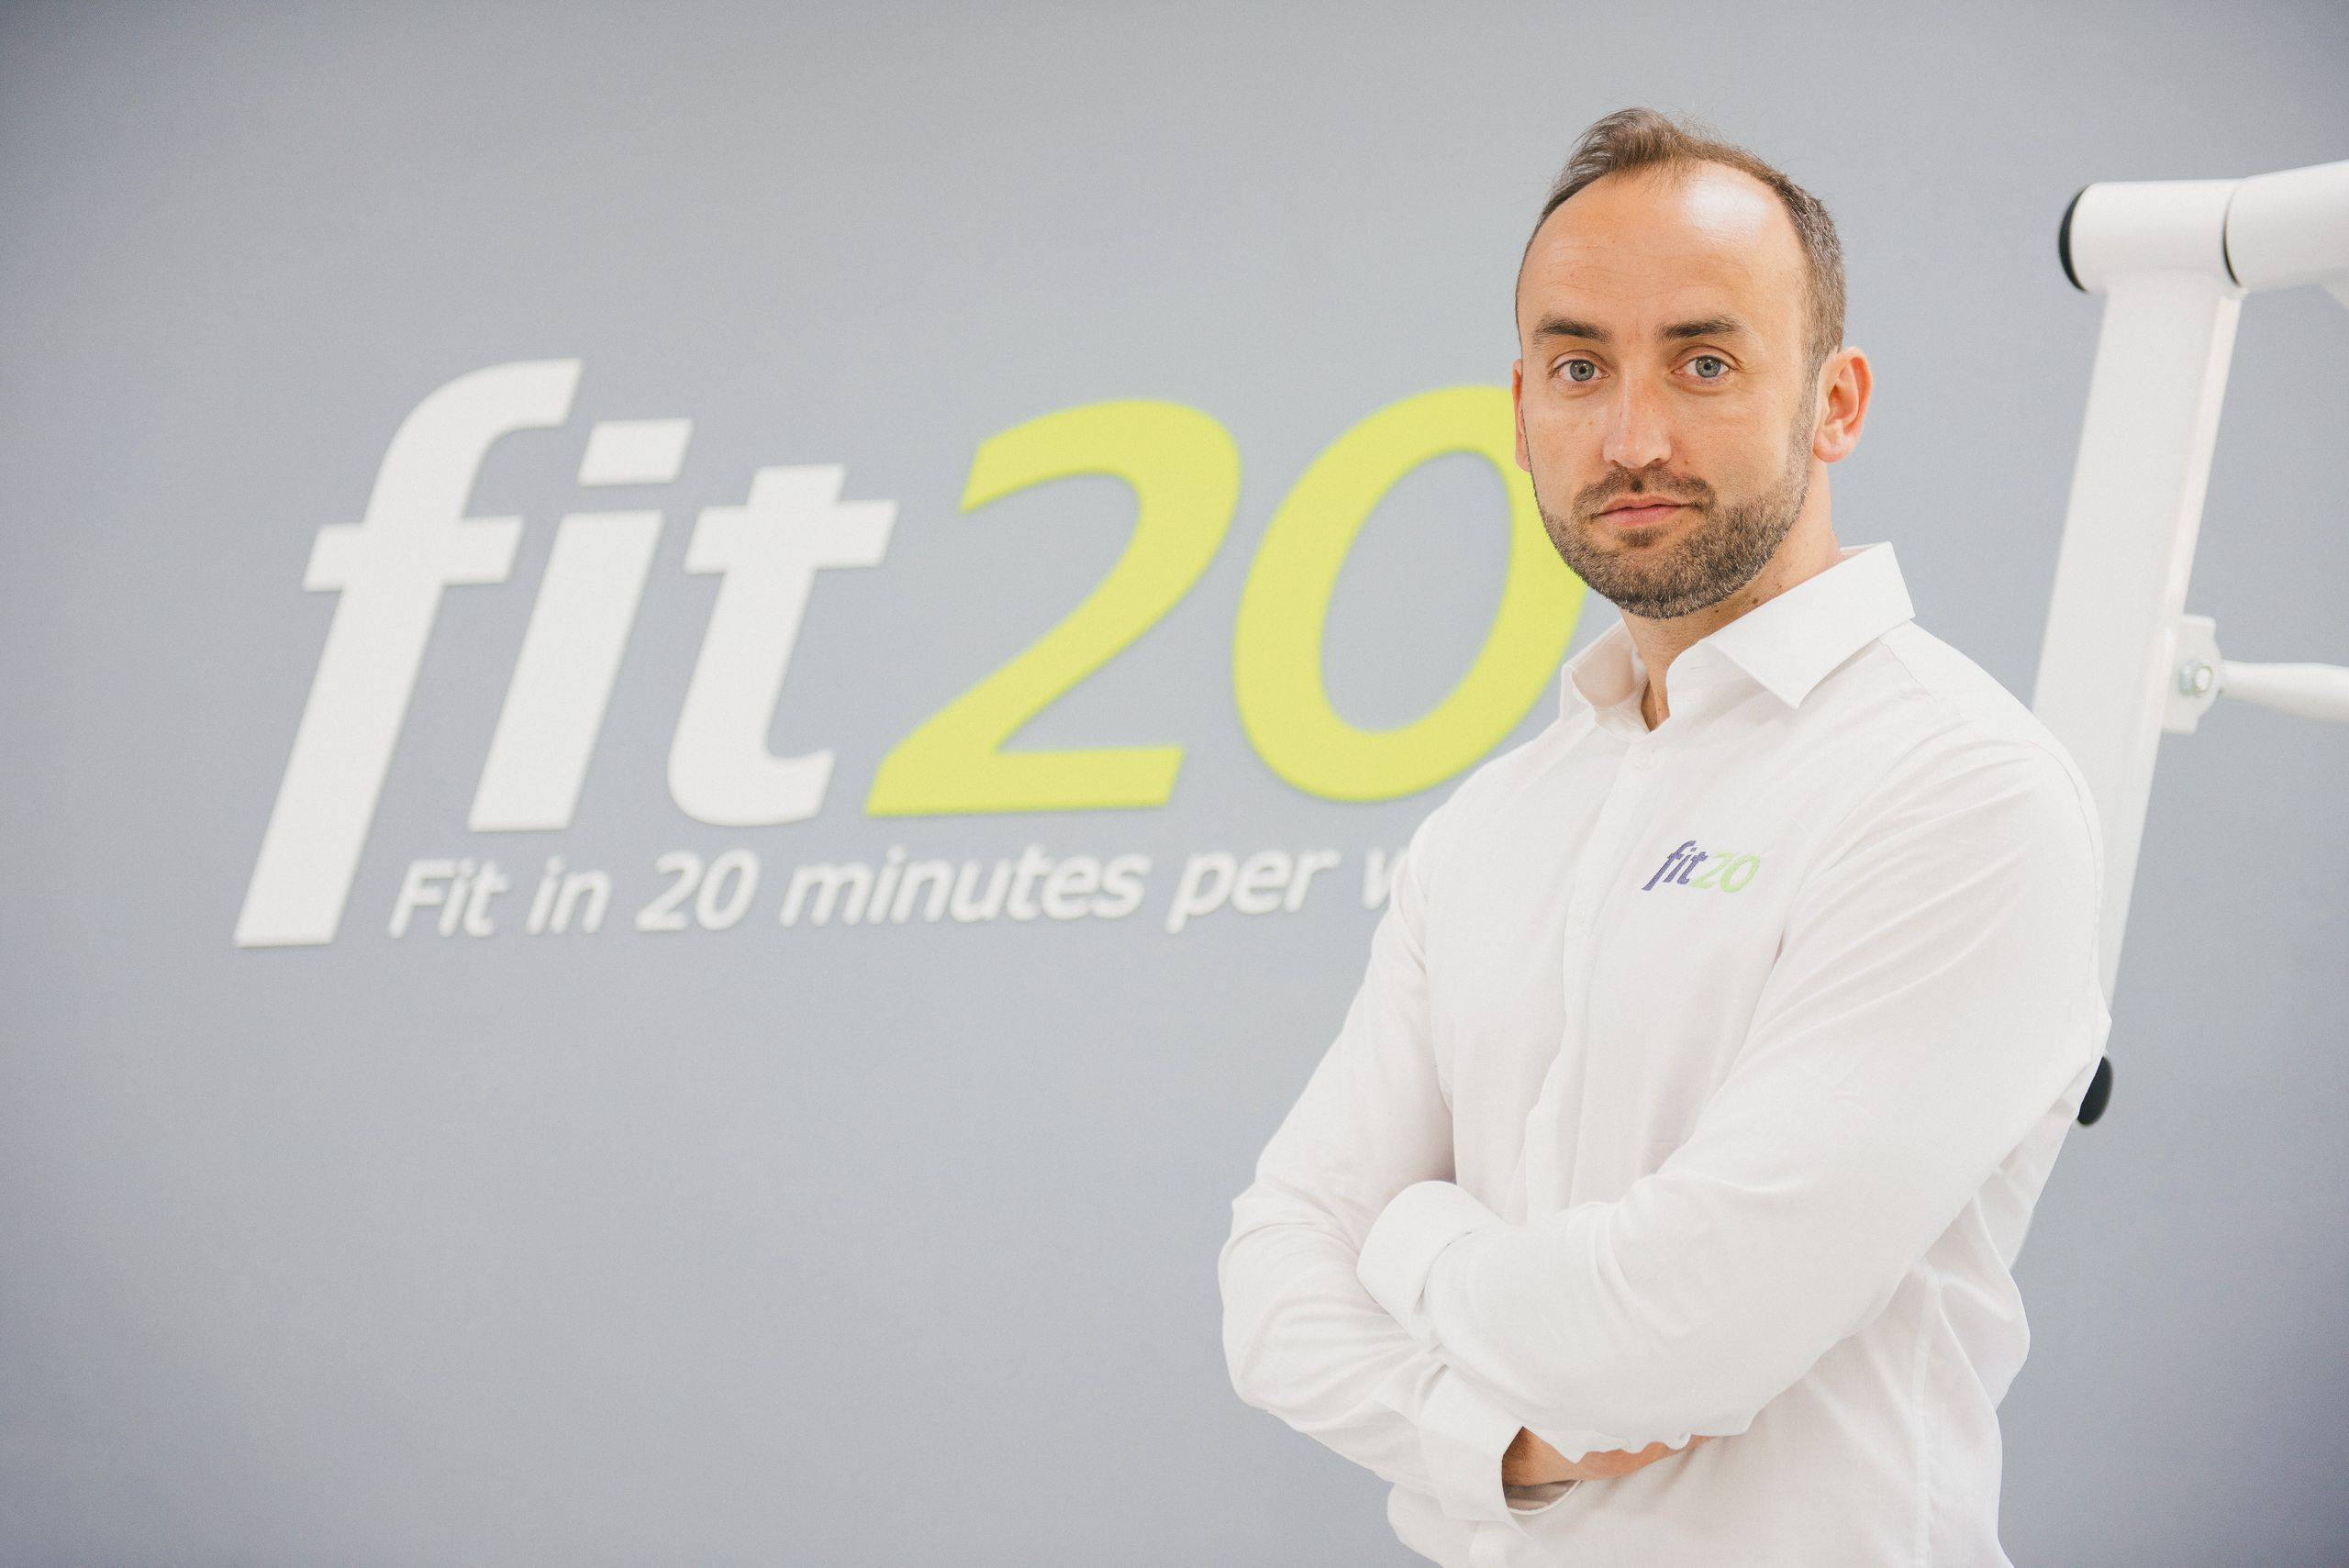 fit20 Chiswick